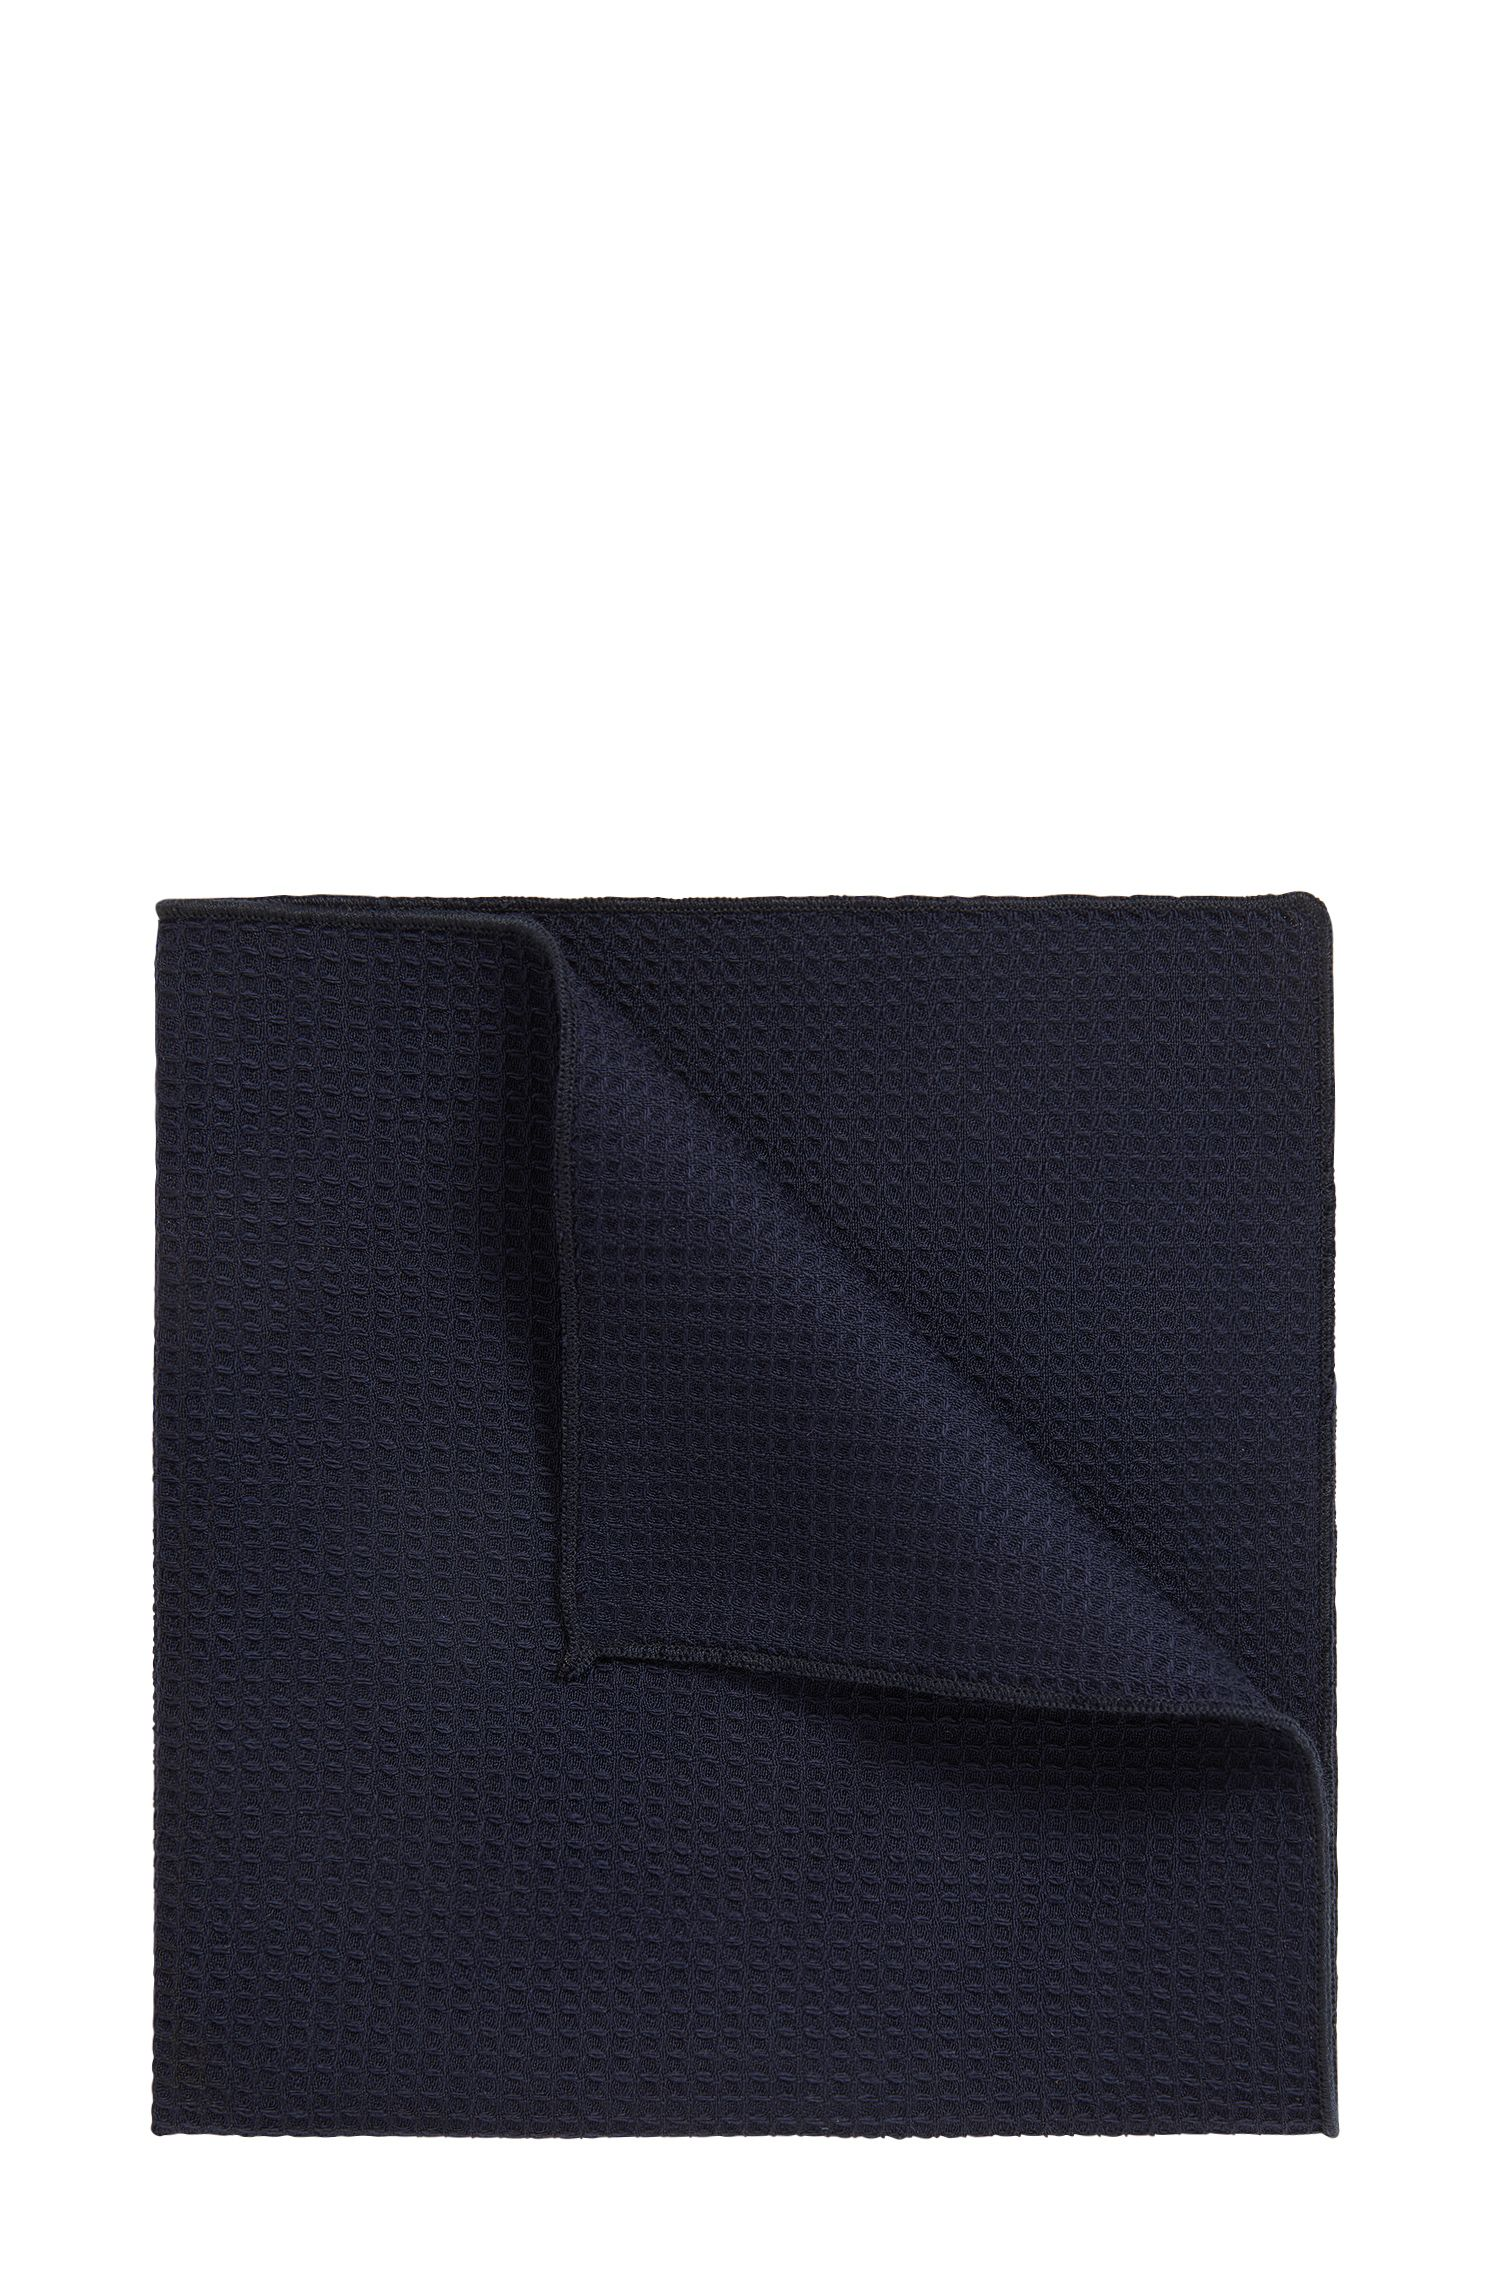 Micro-patterned pocket square in virgin wool